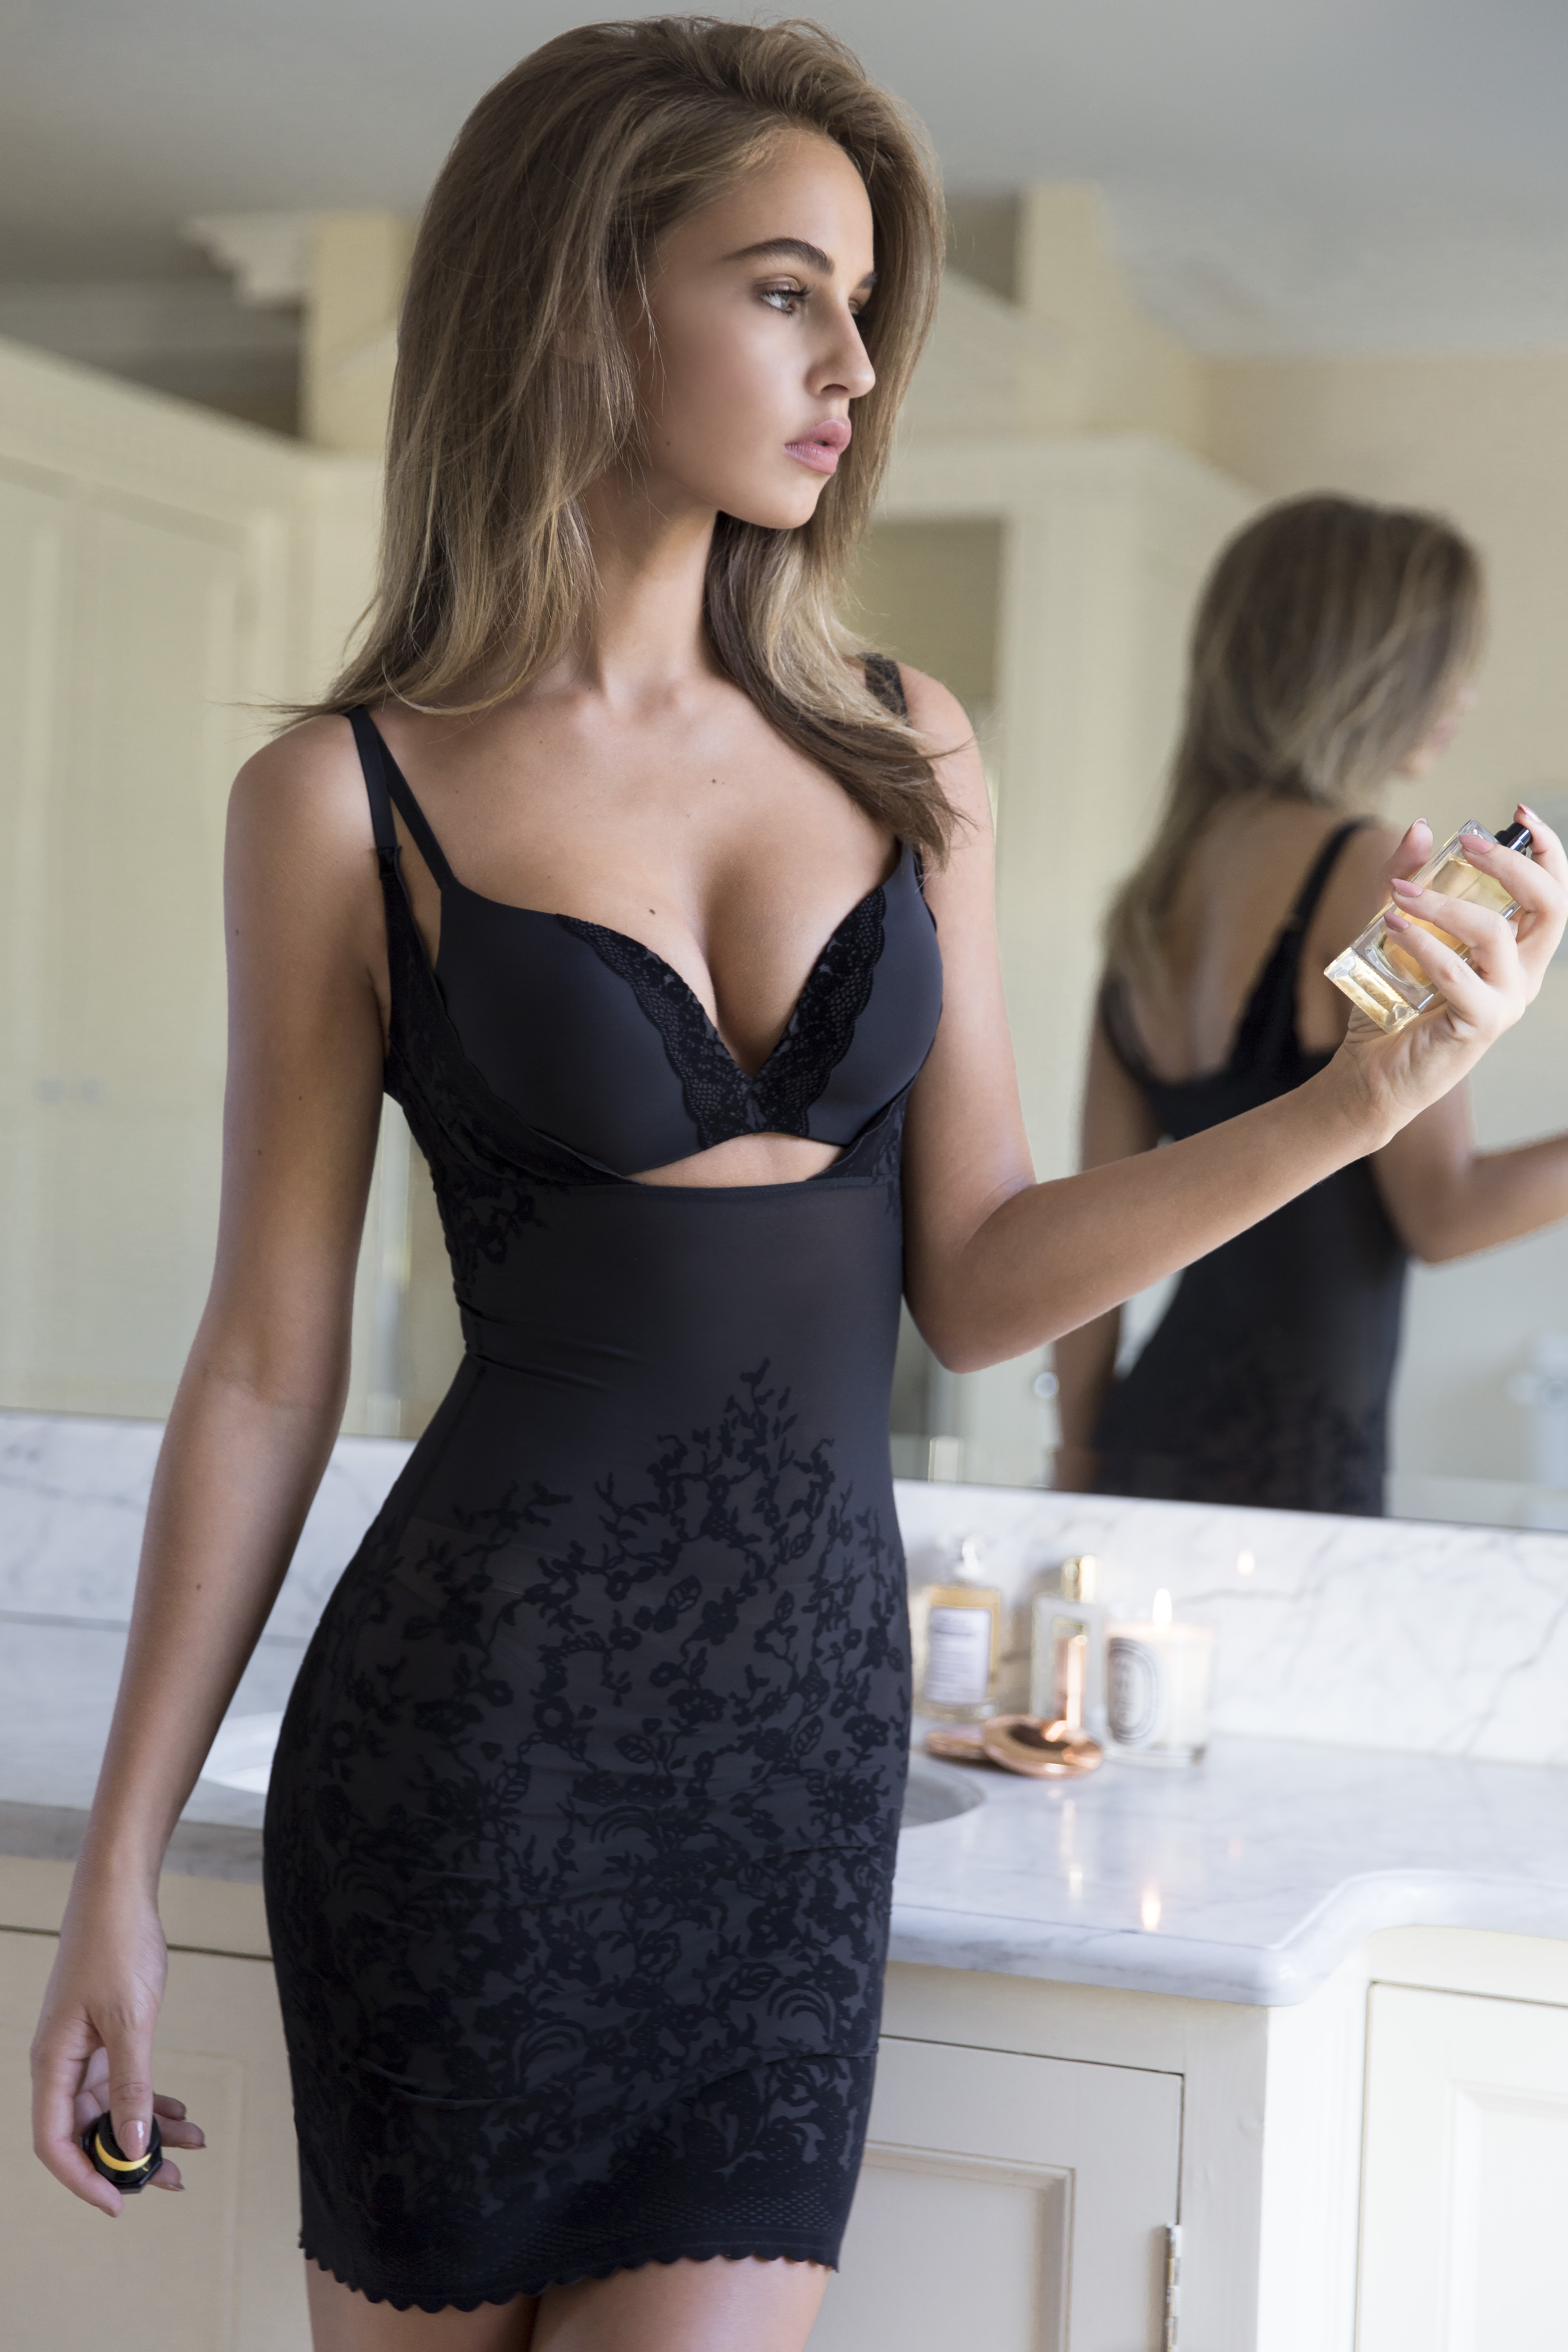 Lingerie Talk: Follow These Top Tips To Find The Perfect ...